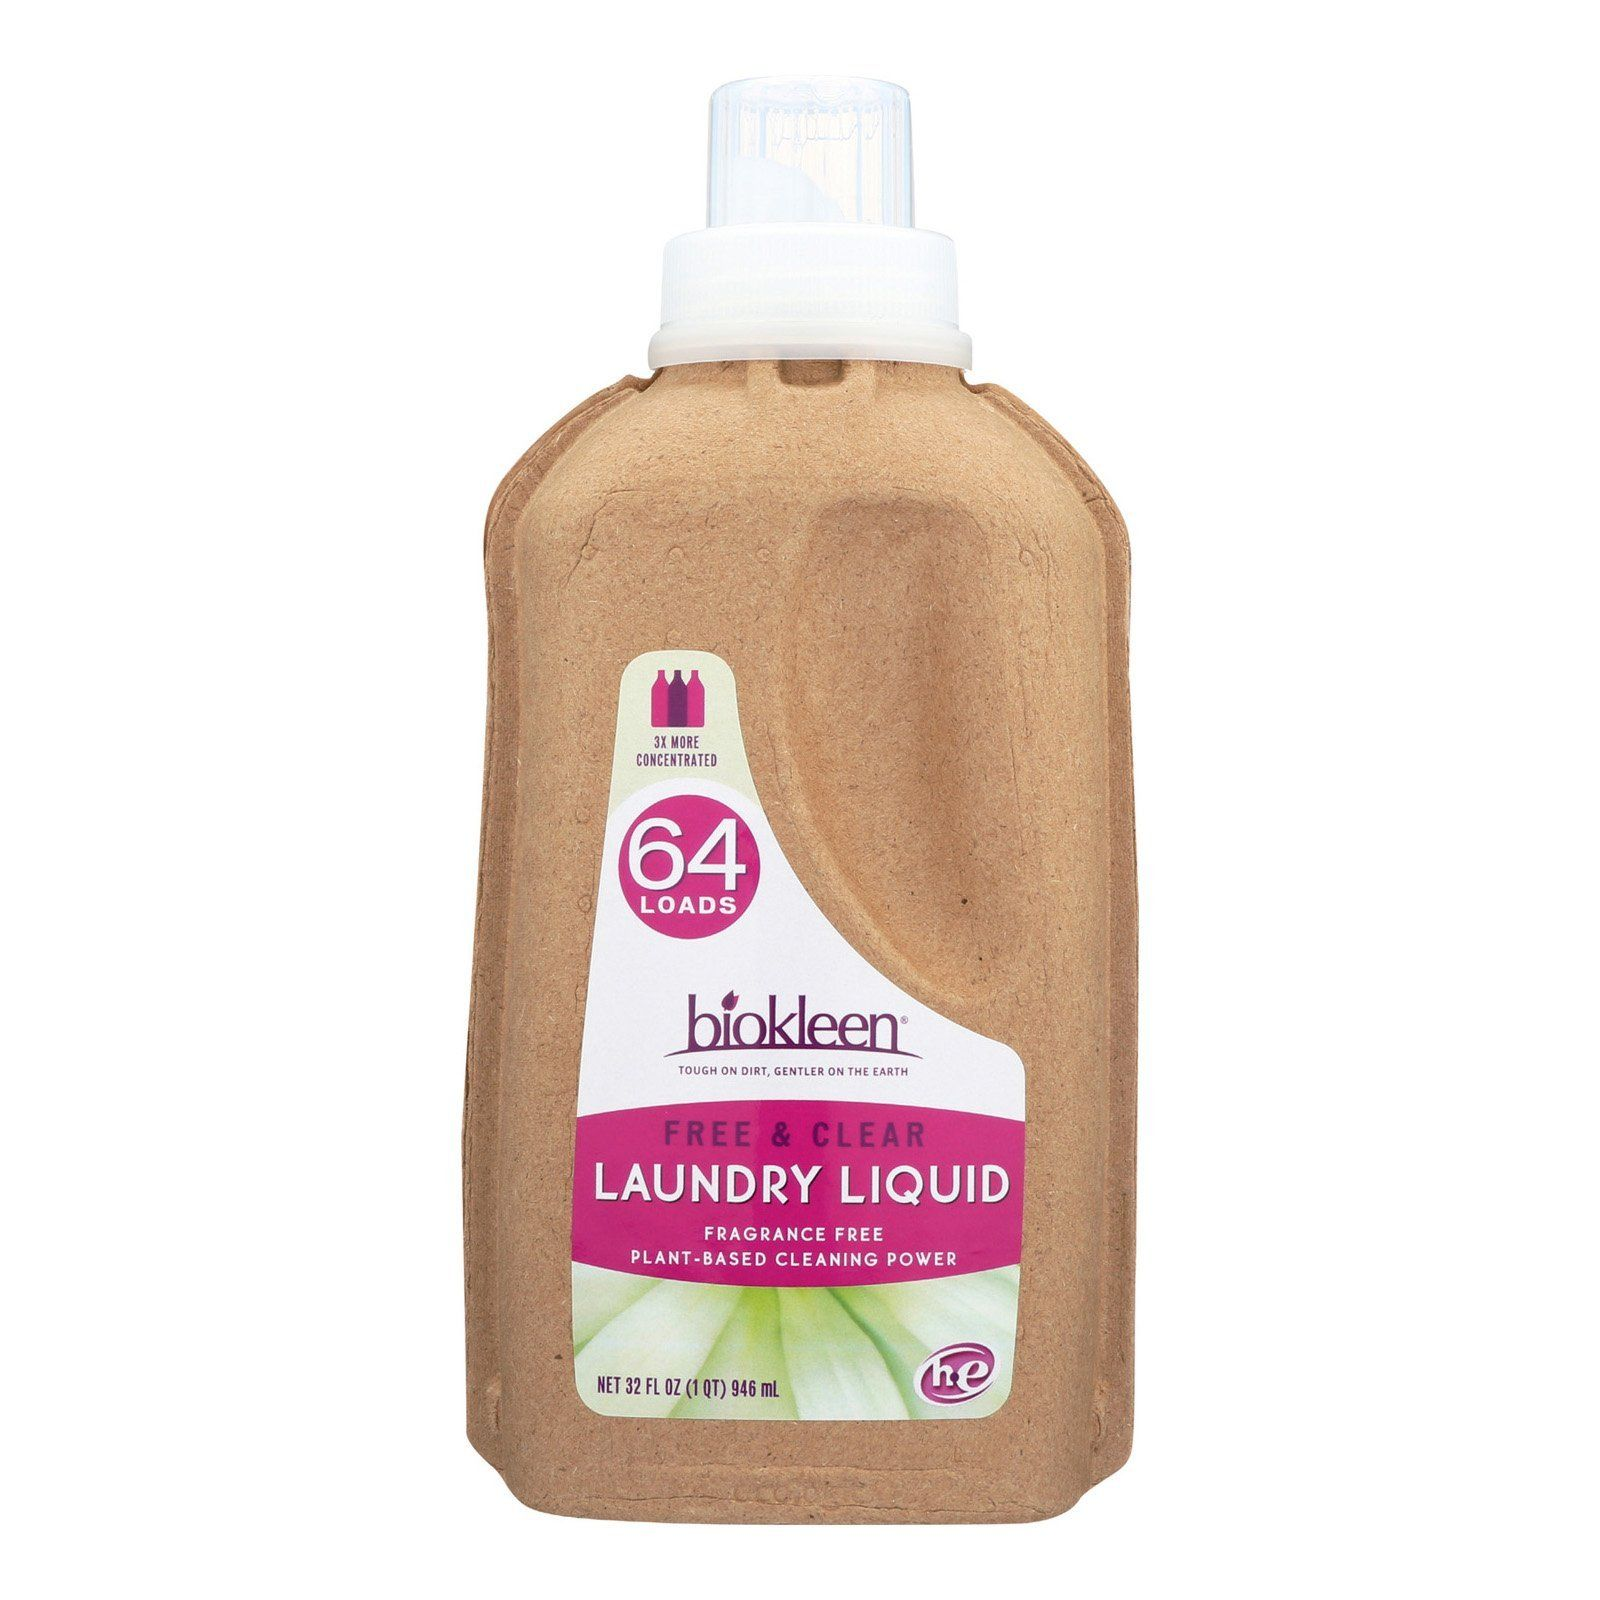 Biokleen Laundry Liquid Free And Clear Bio 32 Oz Case Of 6